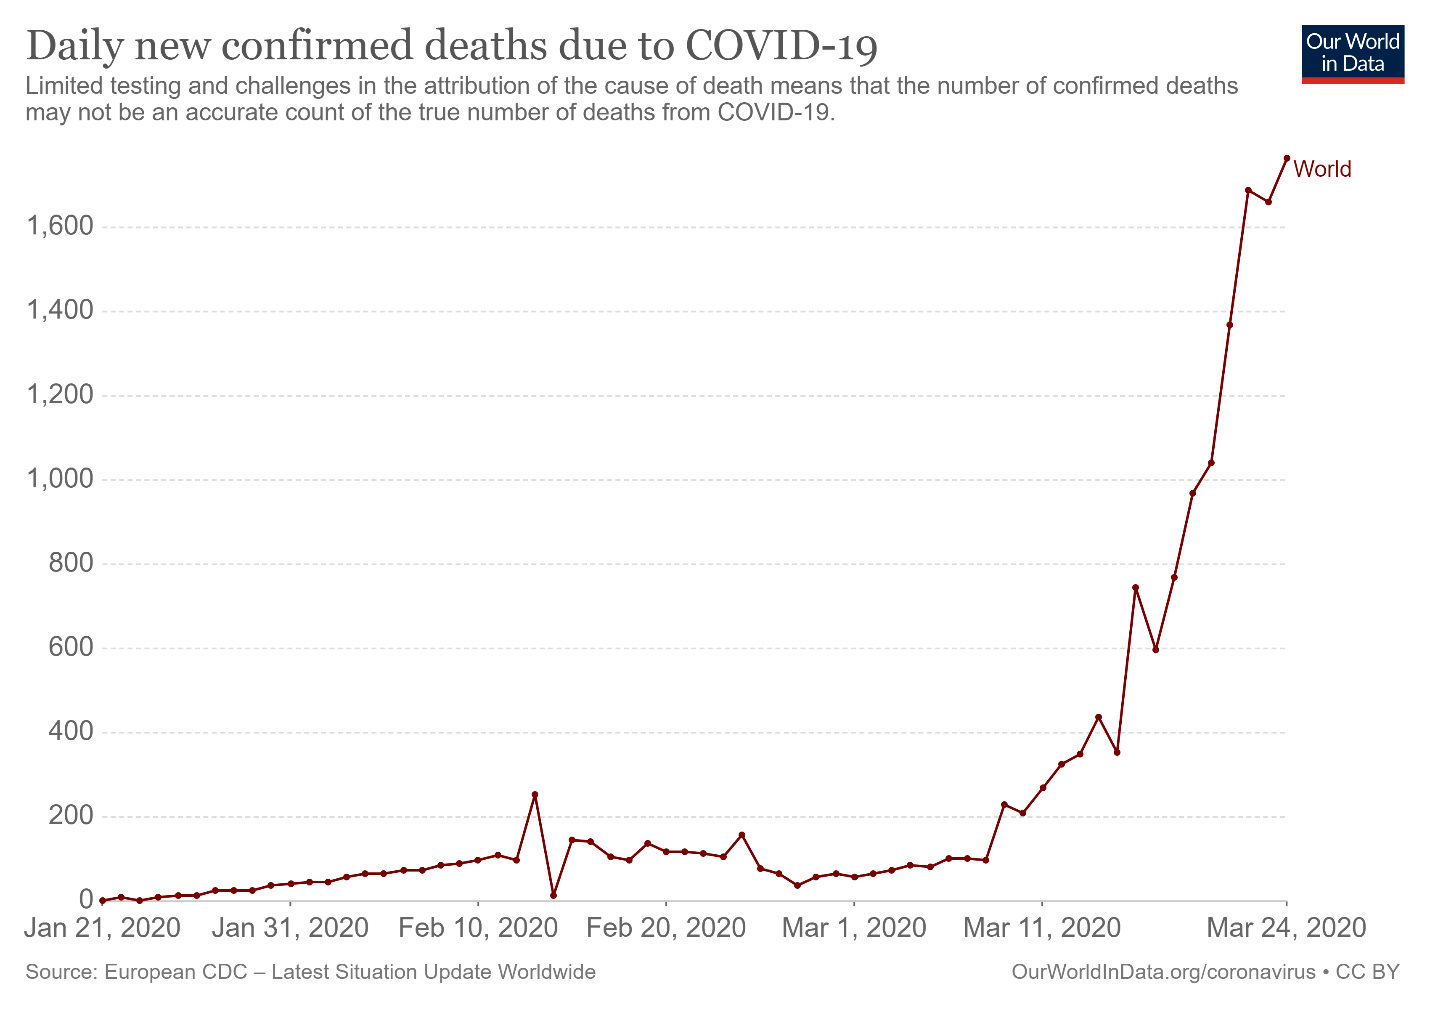 Figure 3: Number of Deaths due to COVID-19 in the World